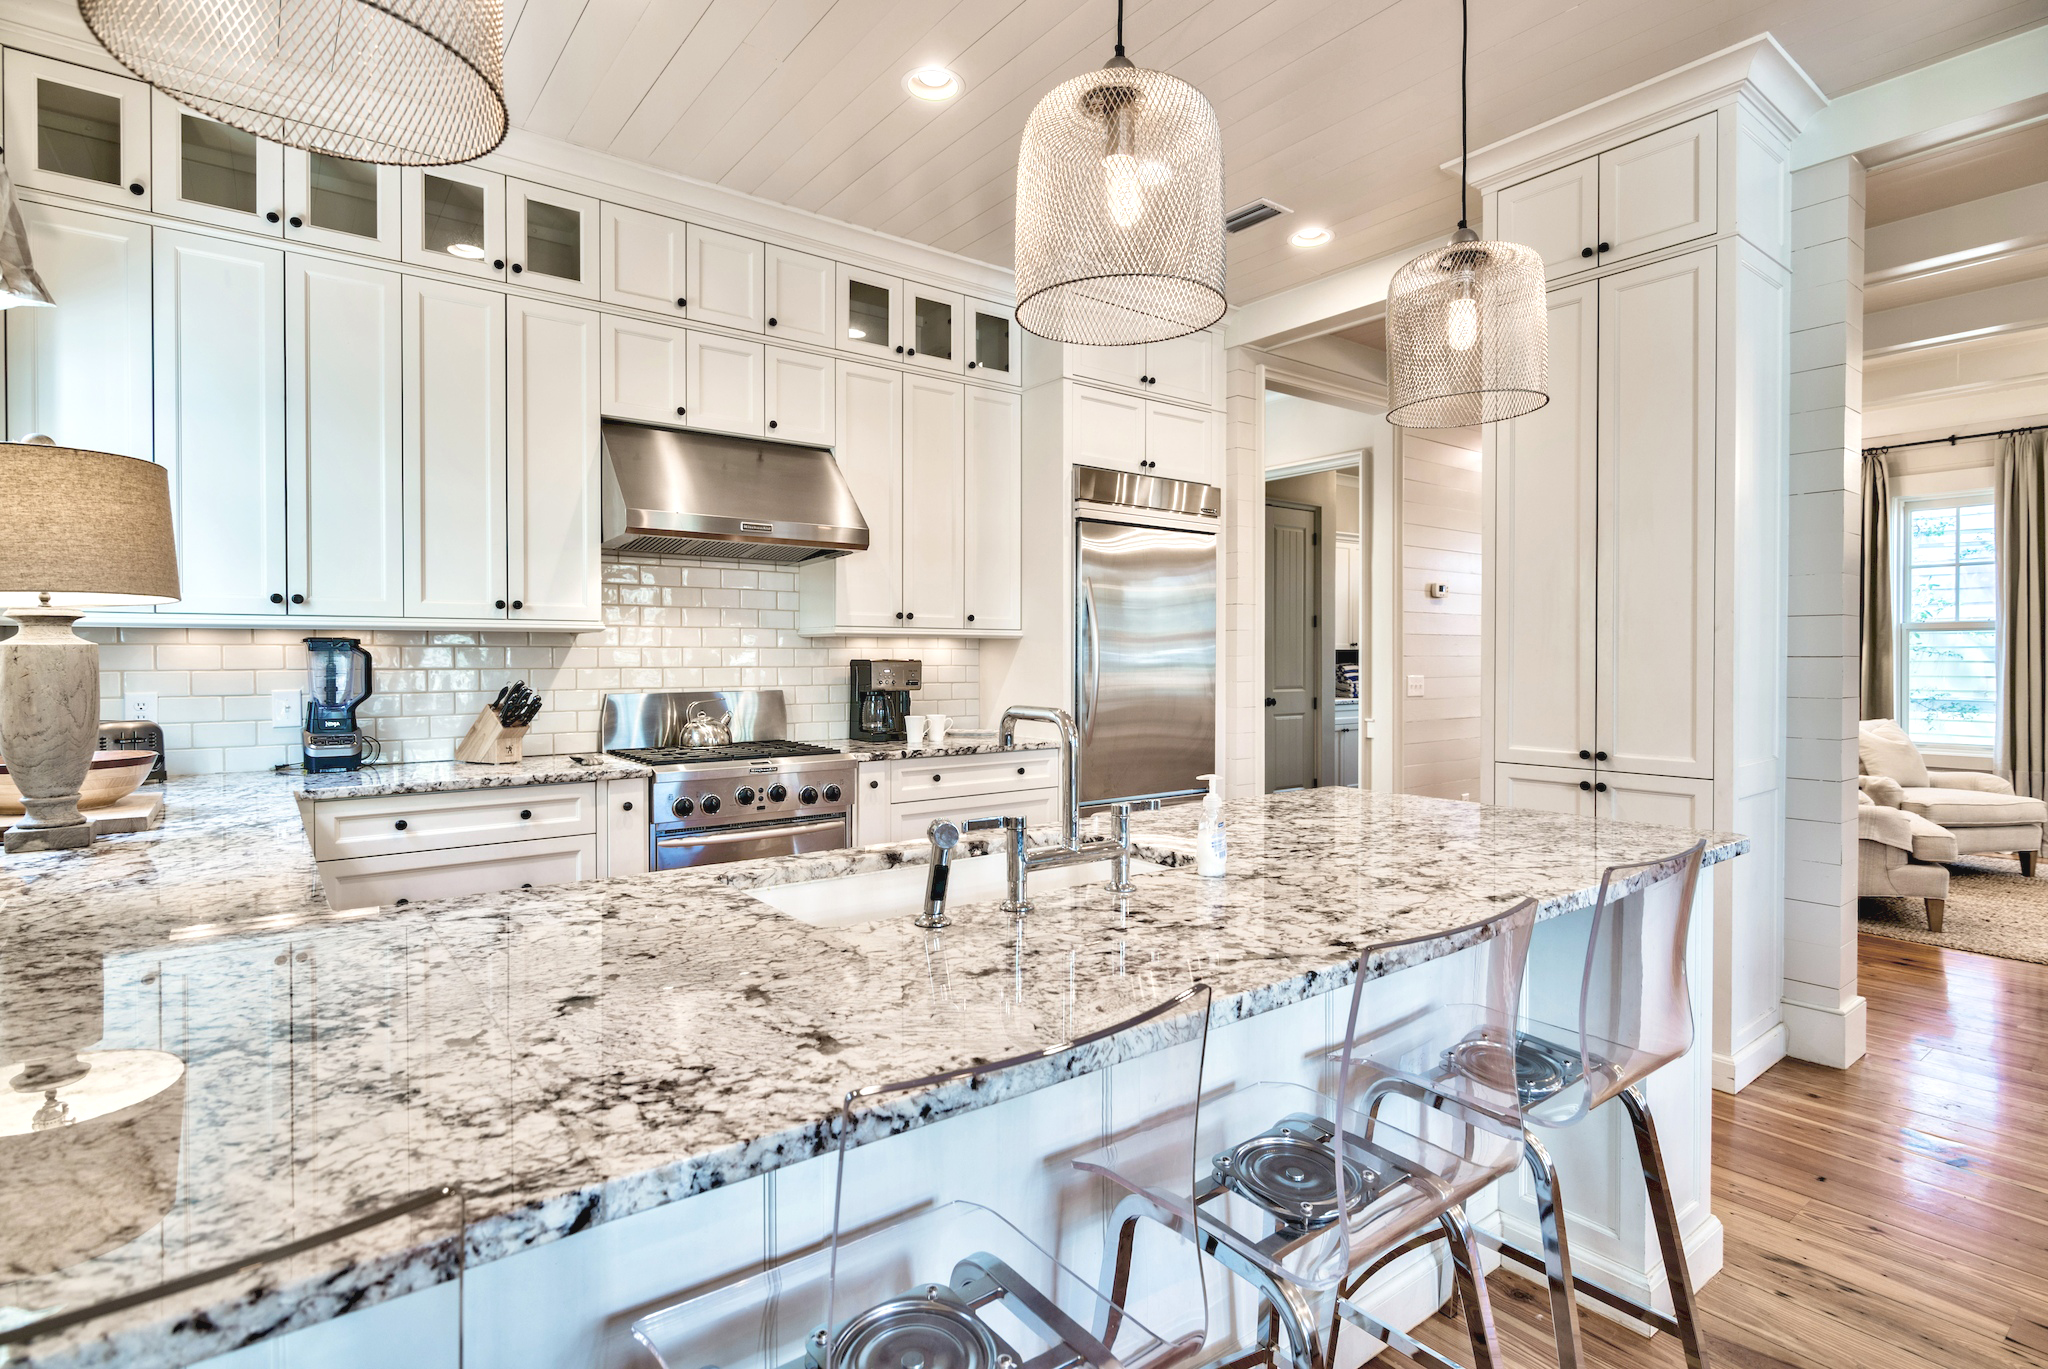 Beautiful granite counters accented by the creamy, white cabinets